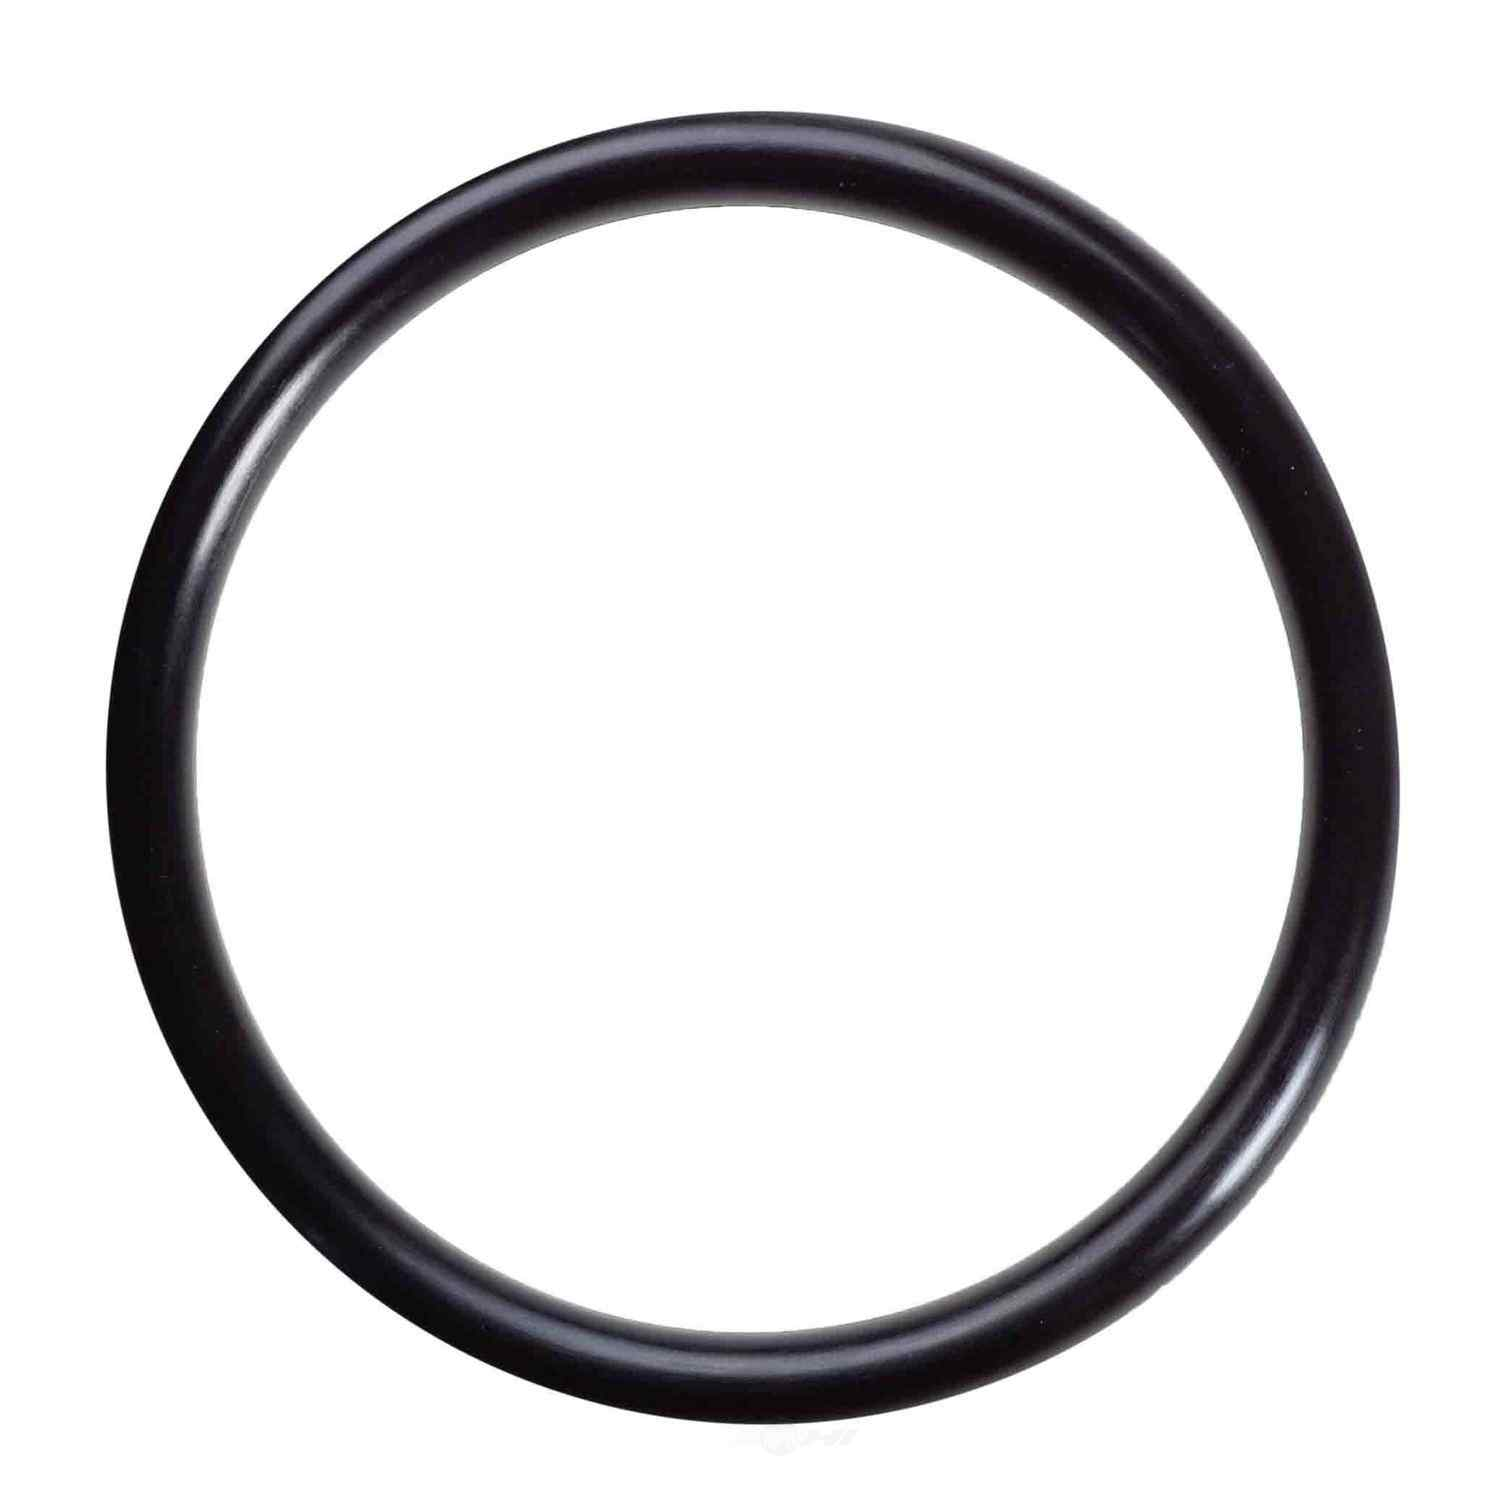 FELPRO - Engine Oil Filter Mounting O-Ring - FEL 413